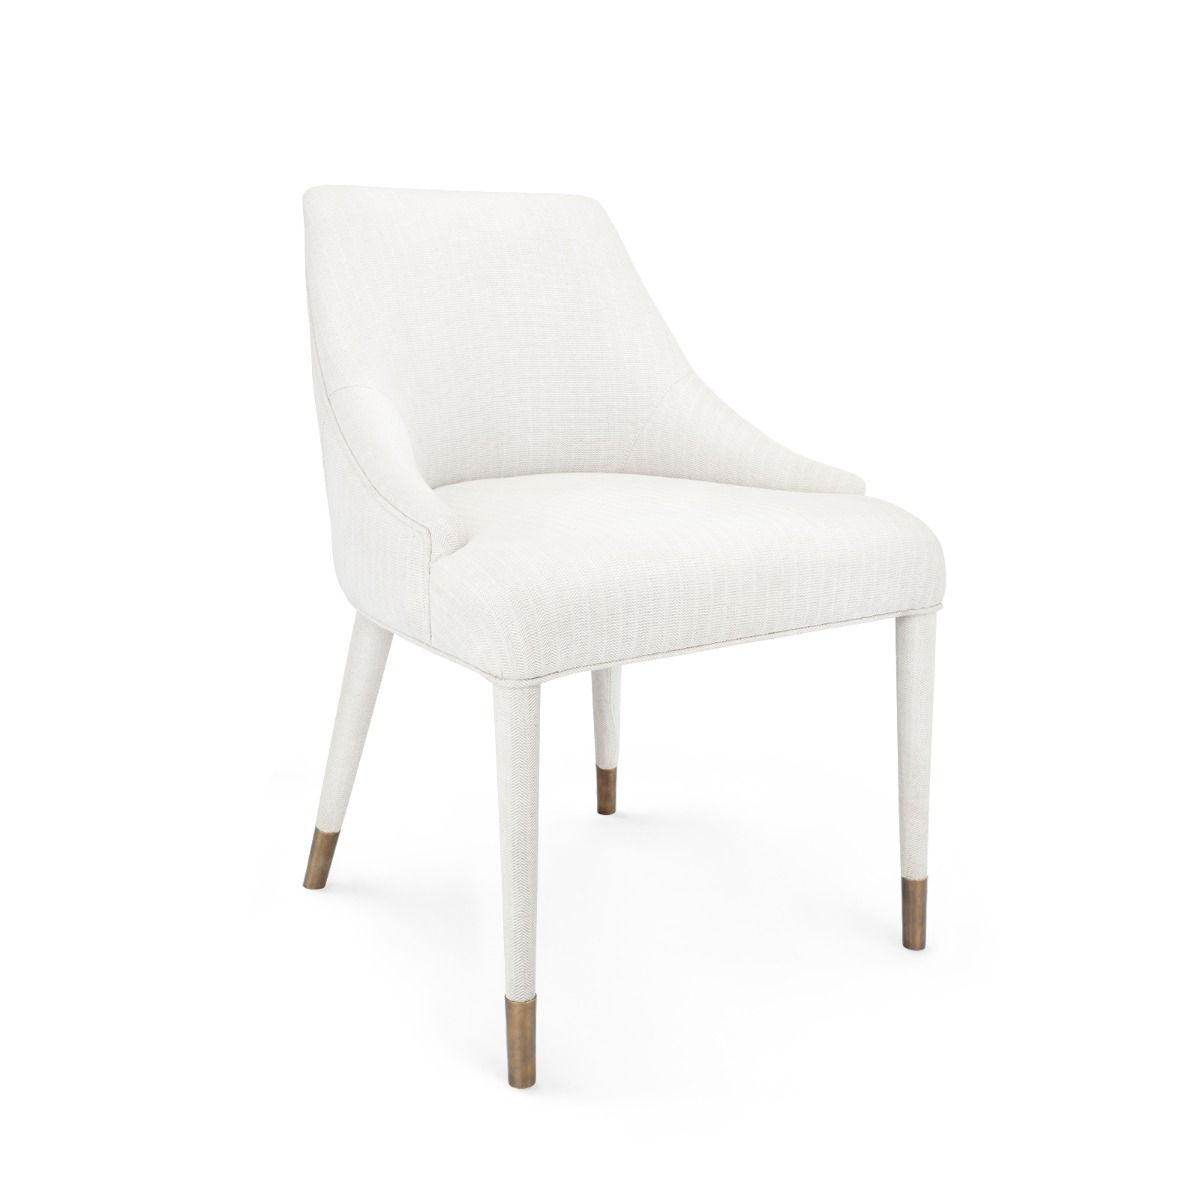 Bungalow 5 - ODETTE ARMCHAIR, NATURAL-Bungalow 5-Blue Hand Home